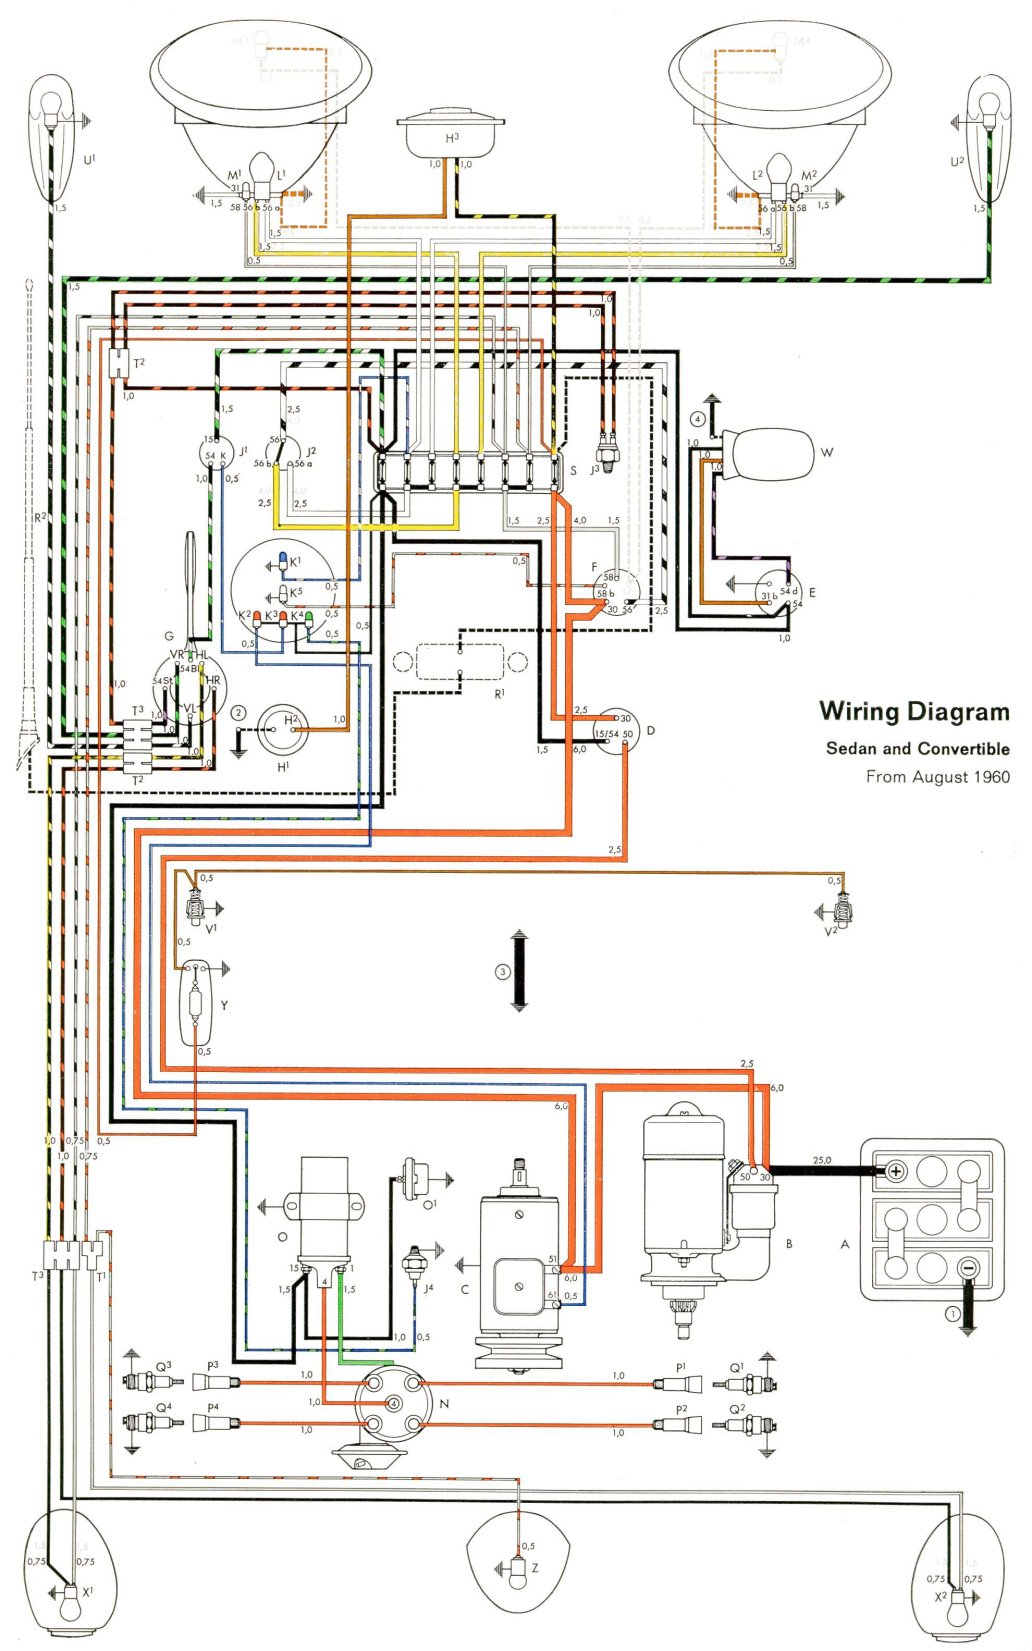 bug_61 1961 vw wiring diagram 1961 wiring diagrams instruction 1968 vw type 3 wiring diagram at gsmx.co